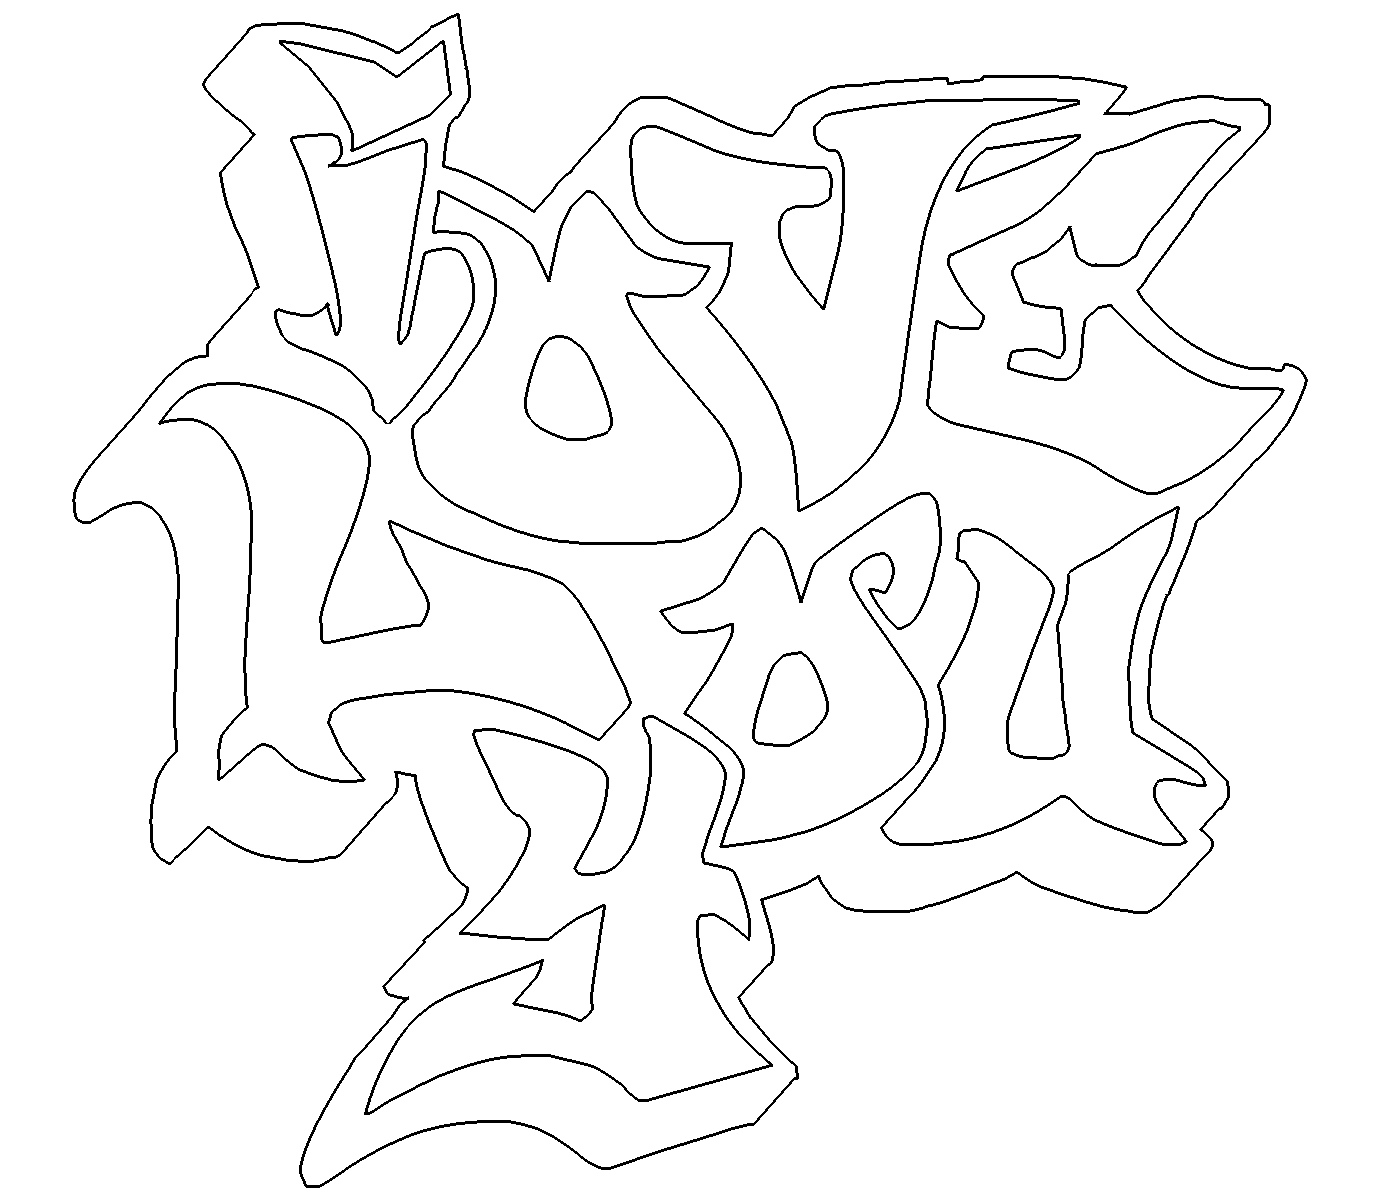 i love you graffiti coloring pages coloring home